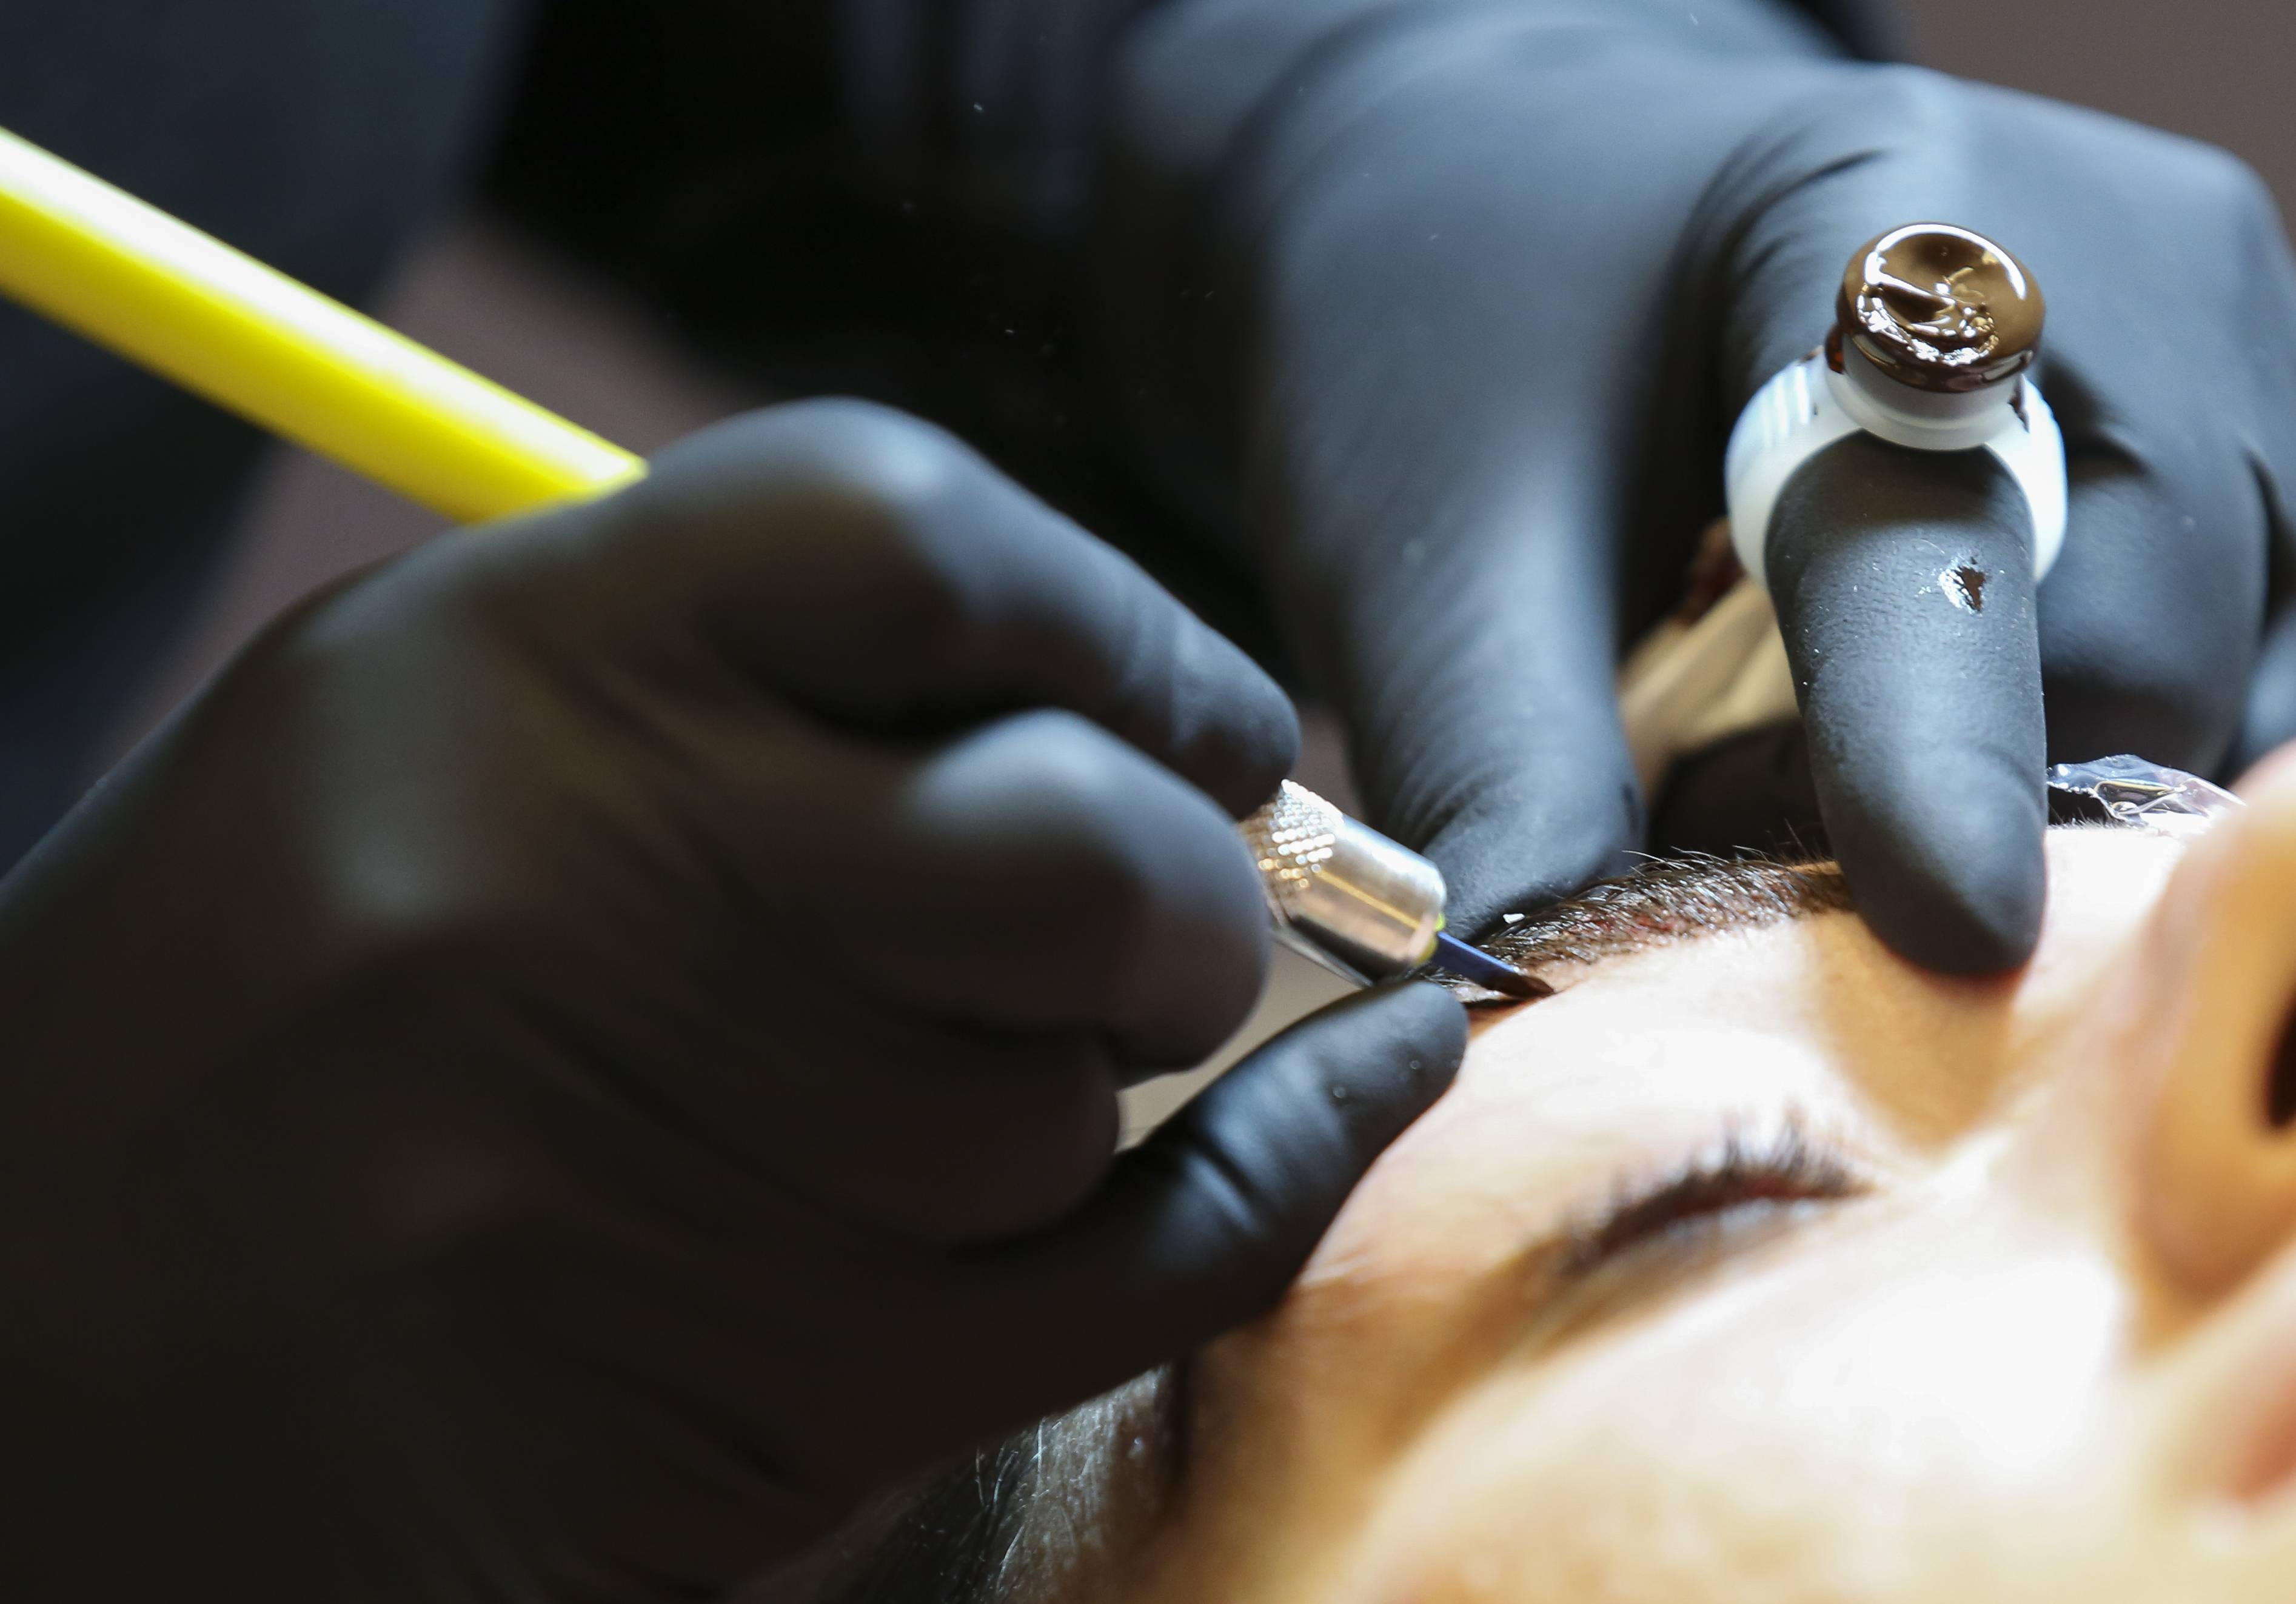 The Grayslake village board decided to change the rules regarding microblading Tuesday night.